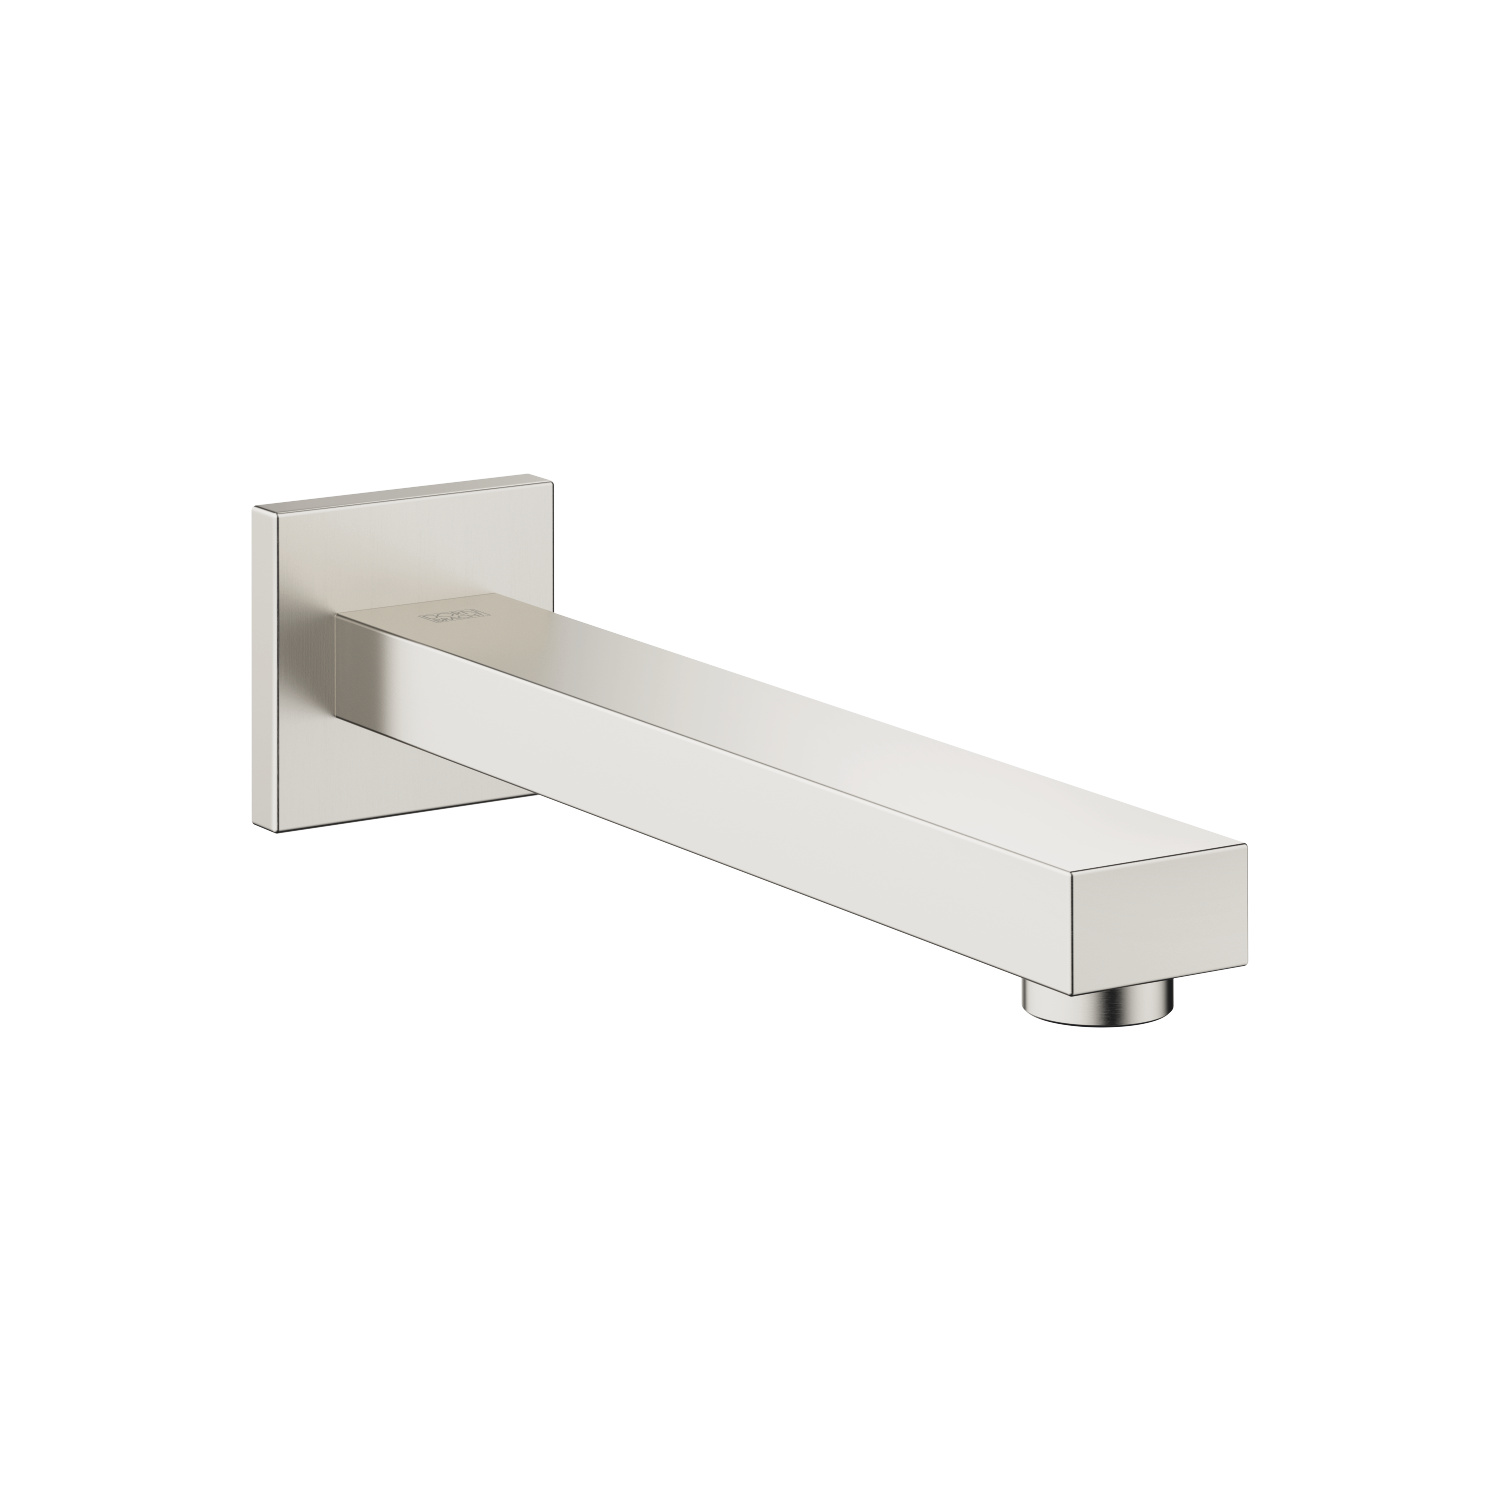 Tub spout for wall-mounted installation - platinum matte